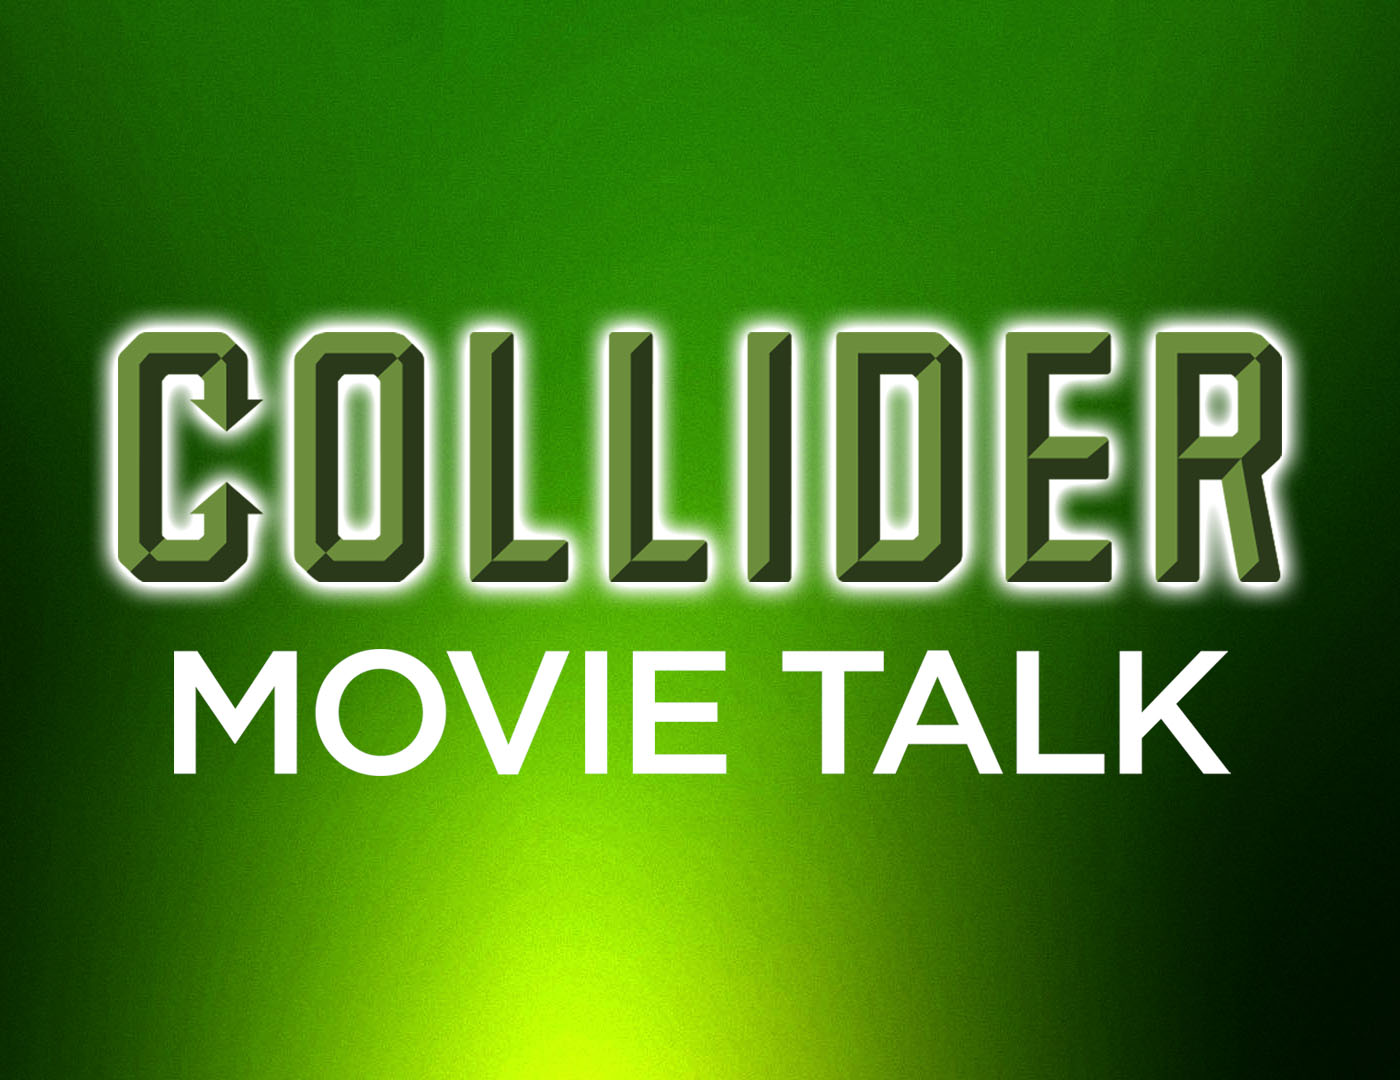 Fast & Furious Director Takes On Hot Wheels - Collider Movie Talk